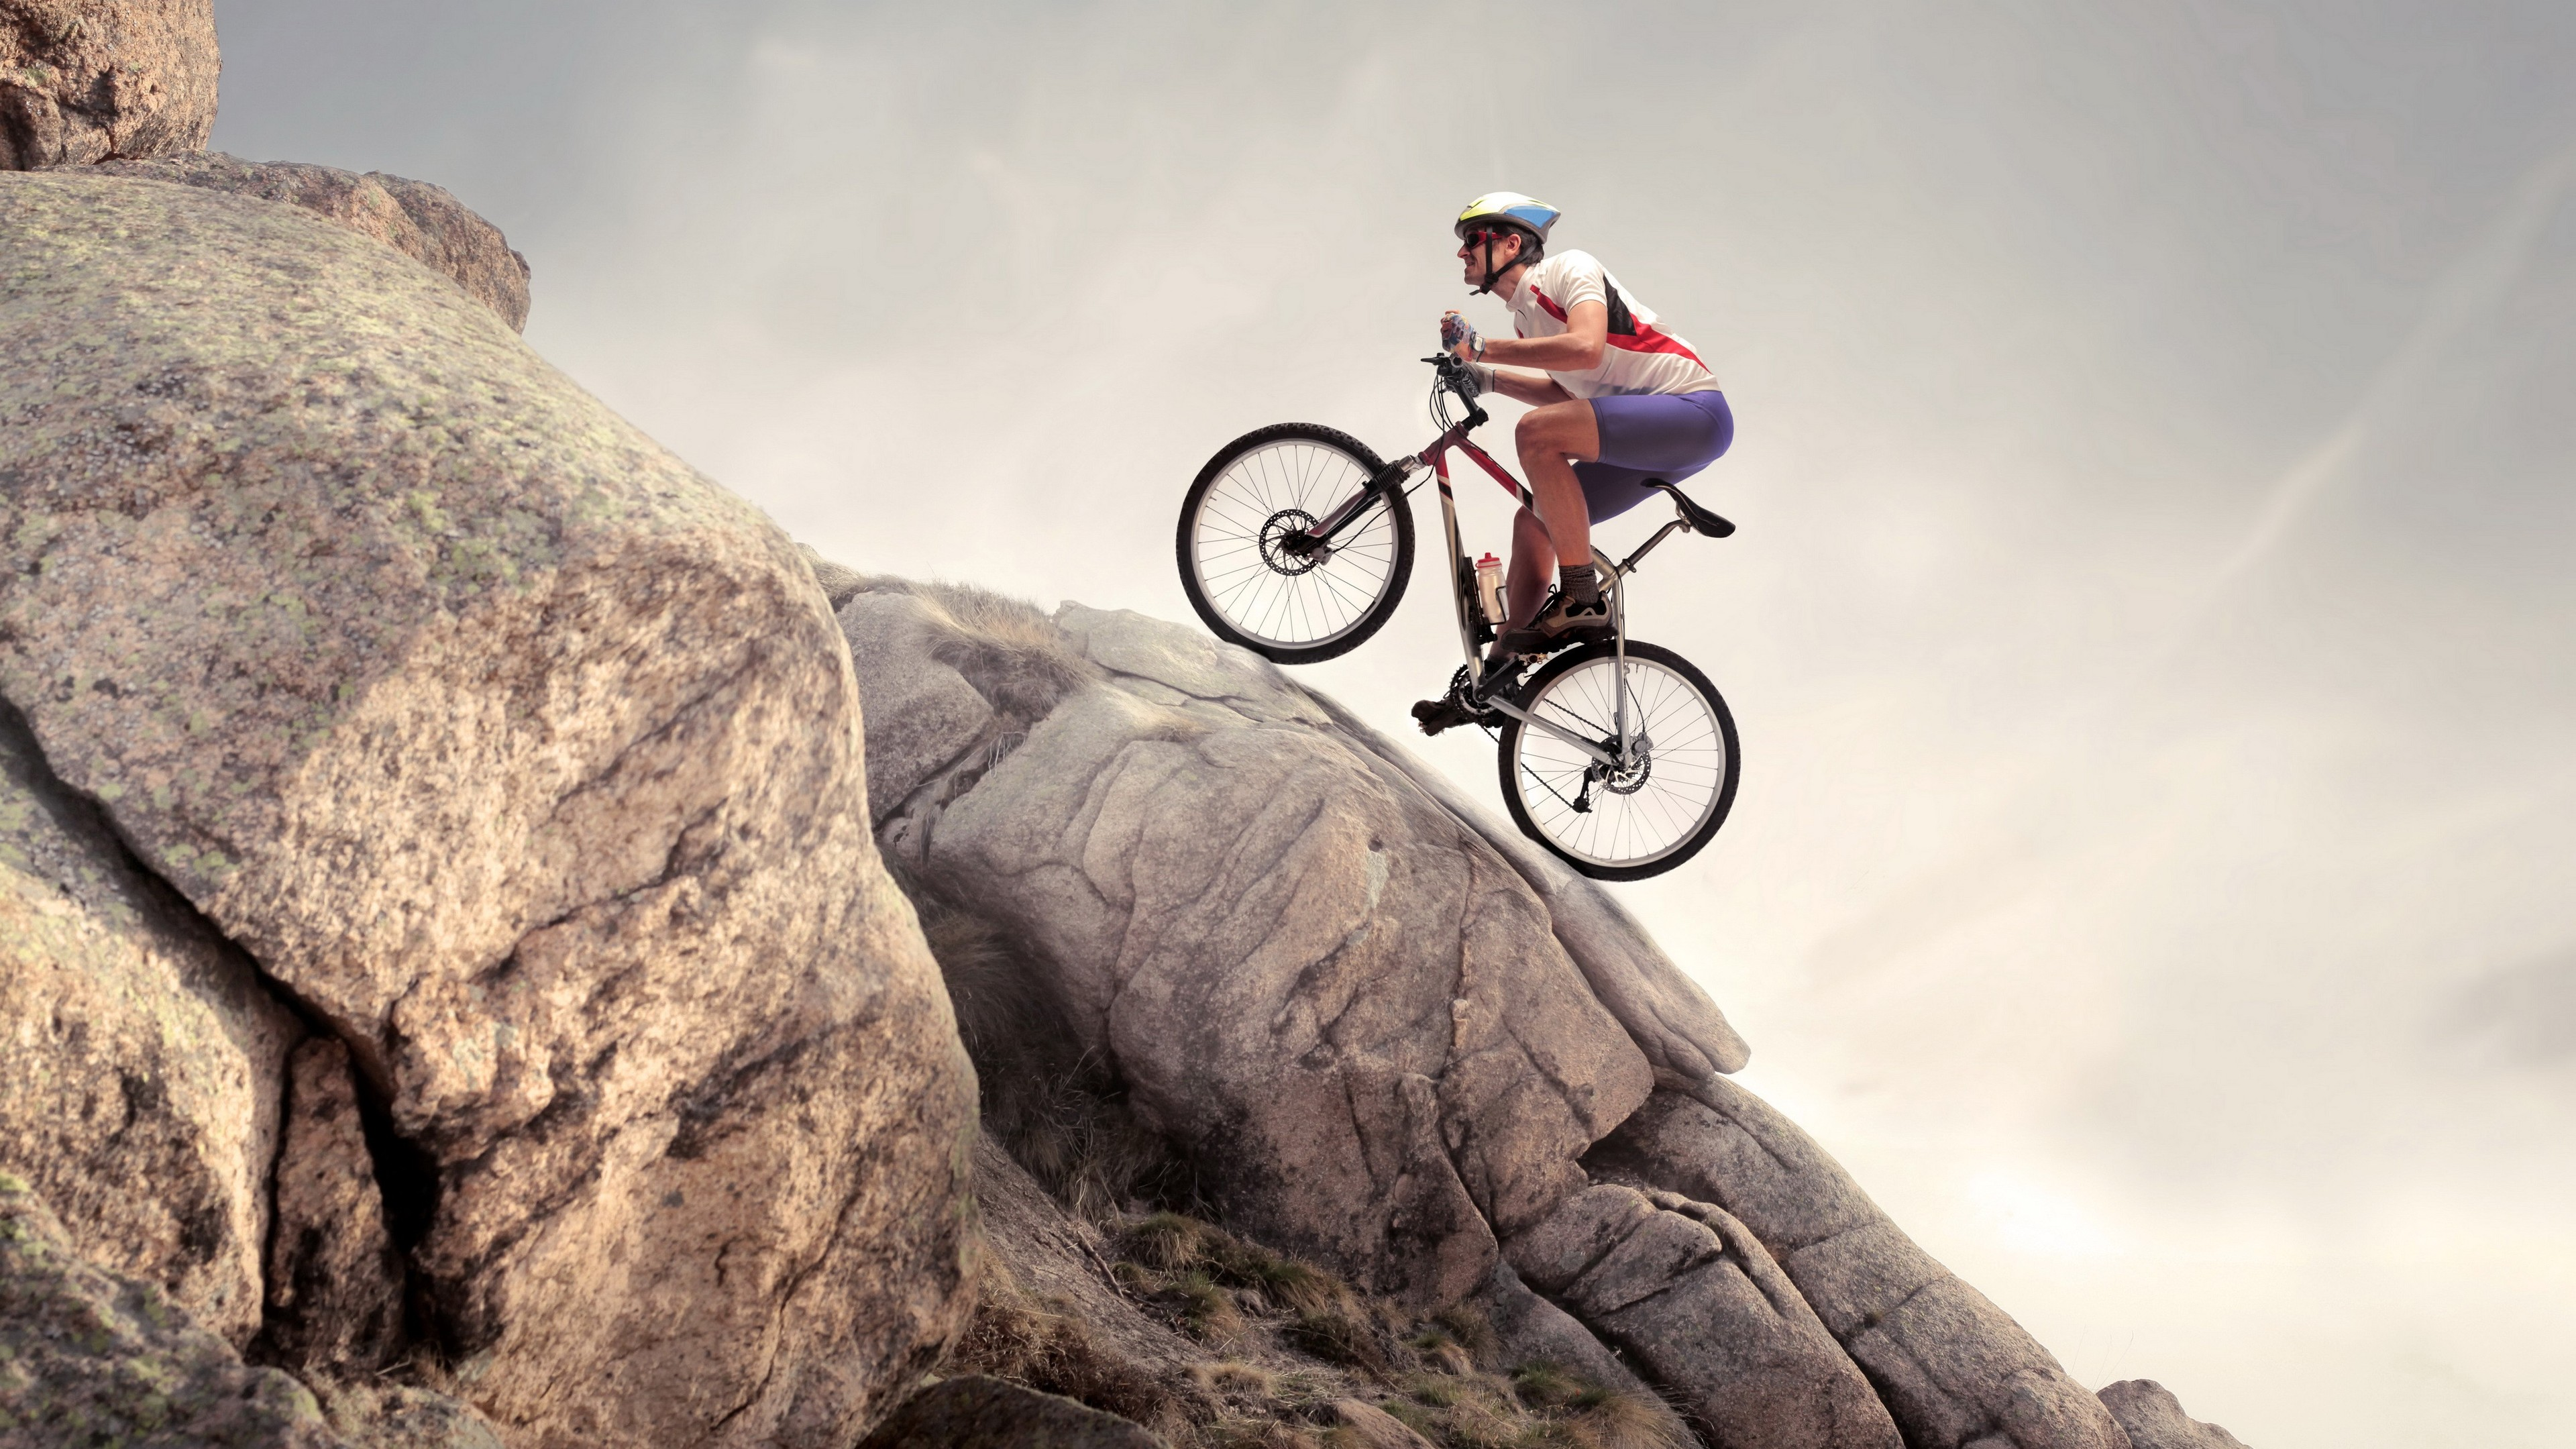 rock climbing cycle 1538786729 - Rock Climbing Cycle - rock wallpapers, cycle wallpapers